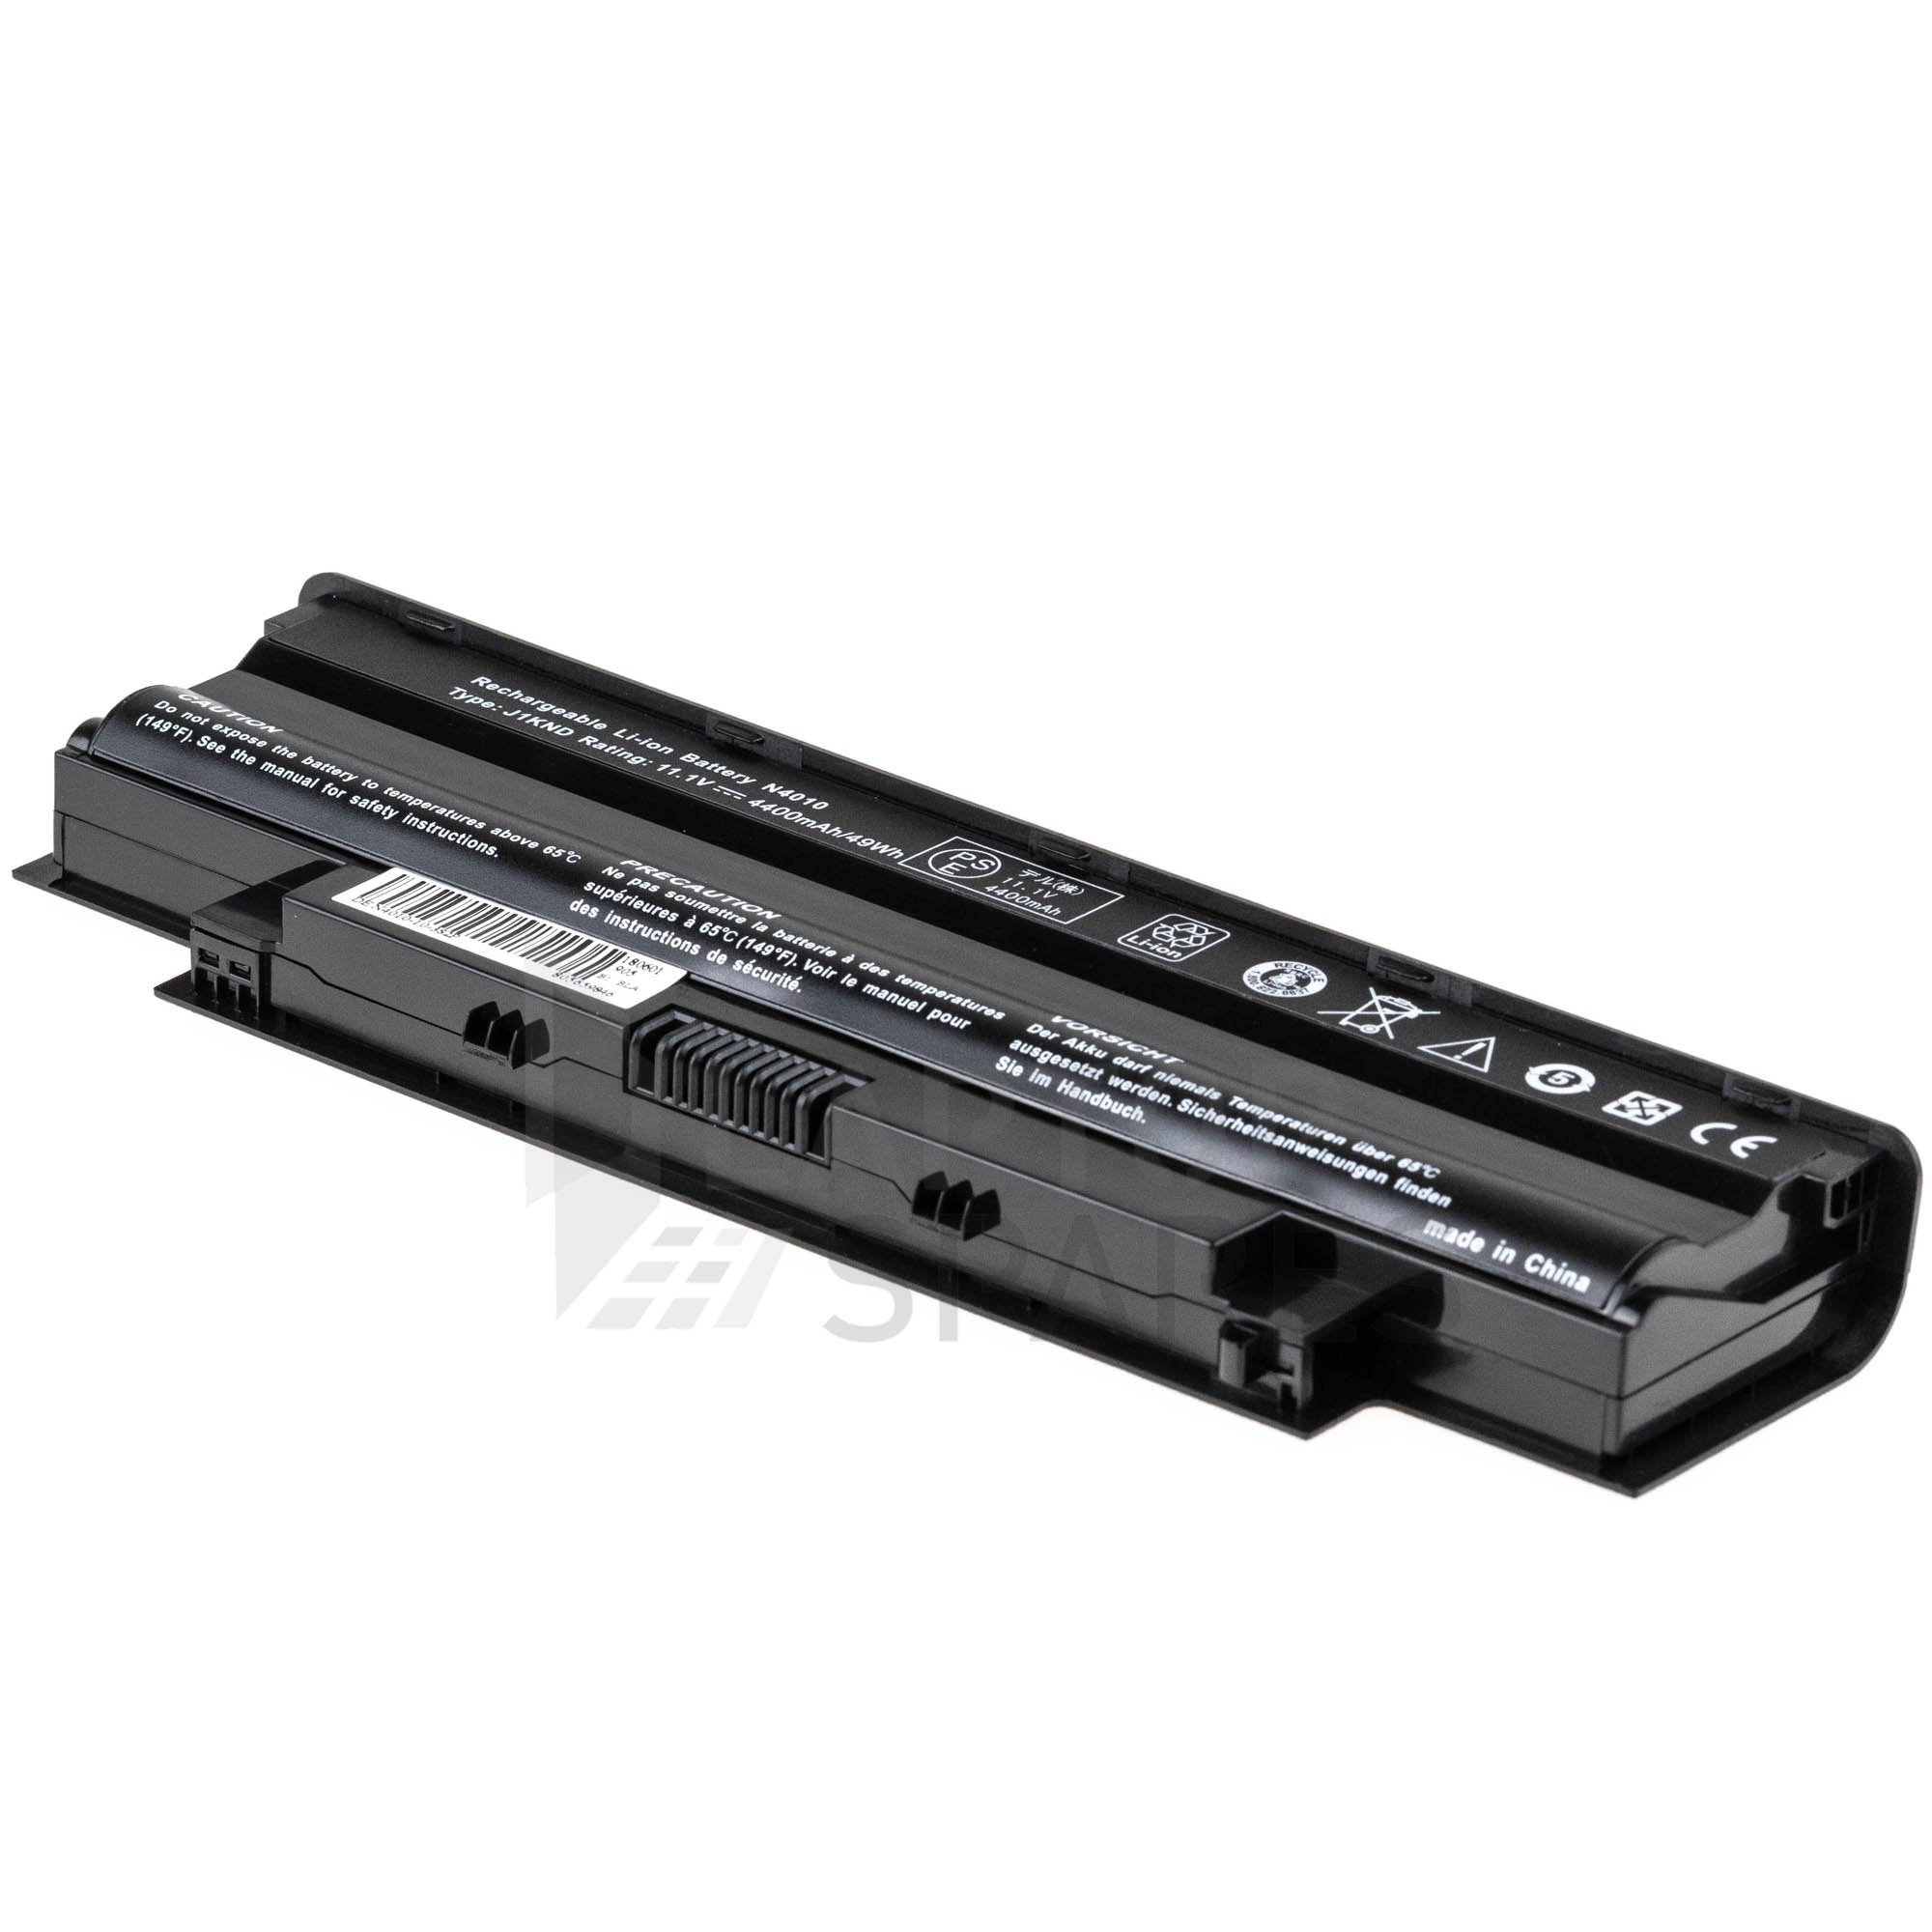 Dell Inspiron 14R INS14RD-438 4400mAh 6 Cell Battery